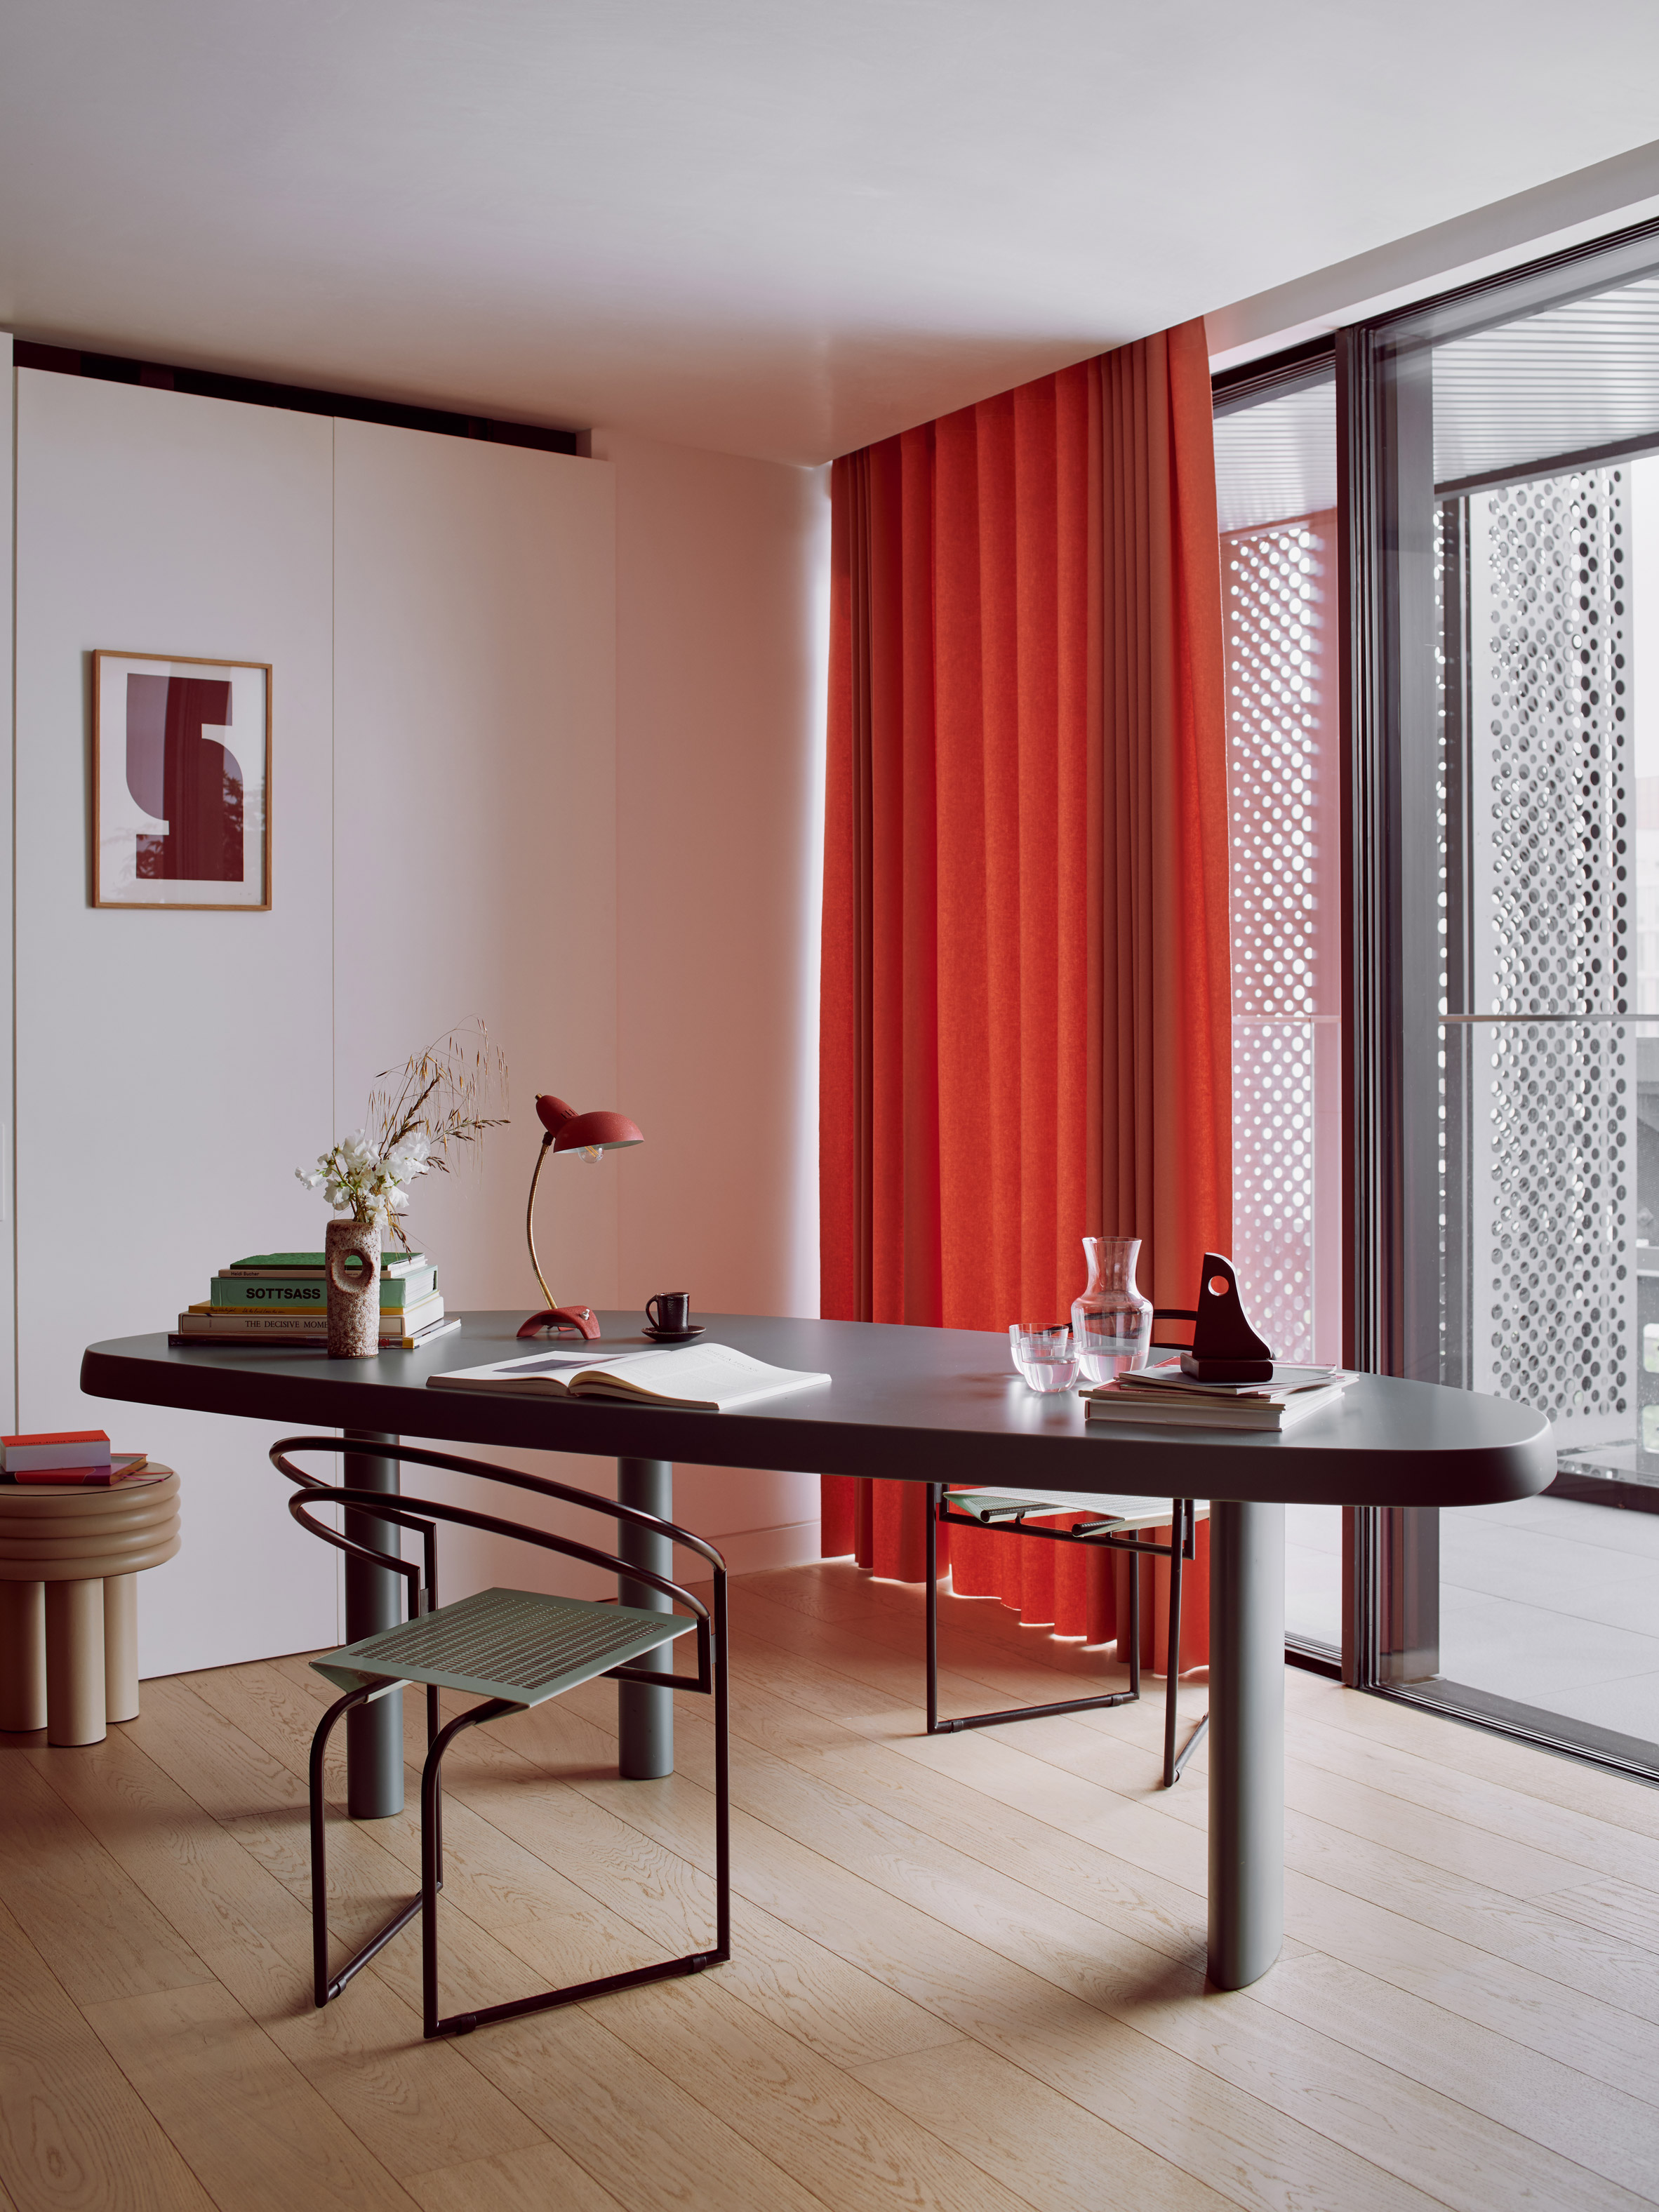 roksanda-ilincic-penthouse-apartment-interiors-kings-cross-london_dezeen_2364_col_12.jpg